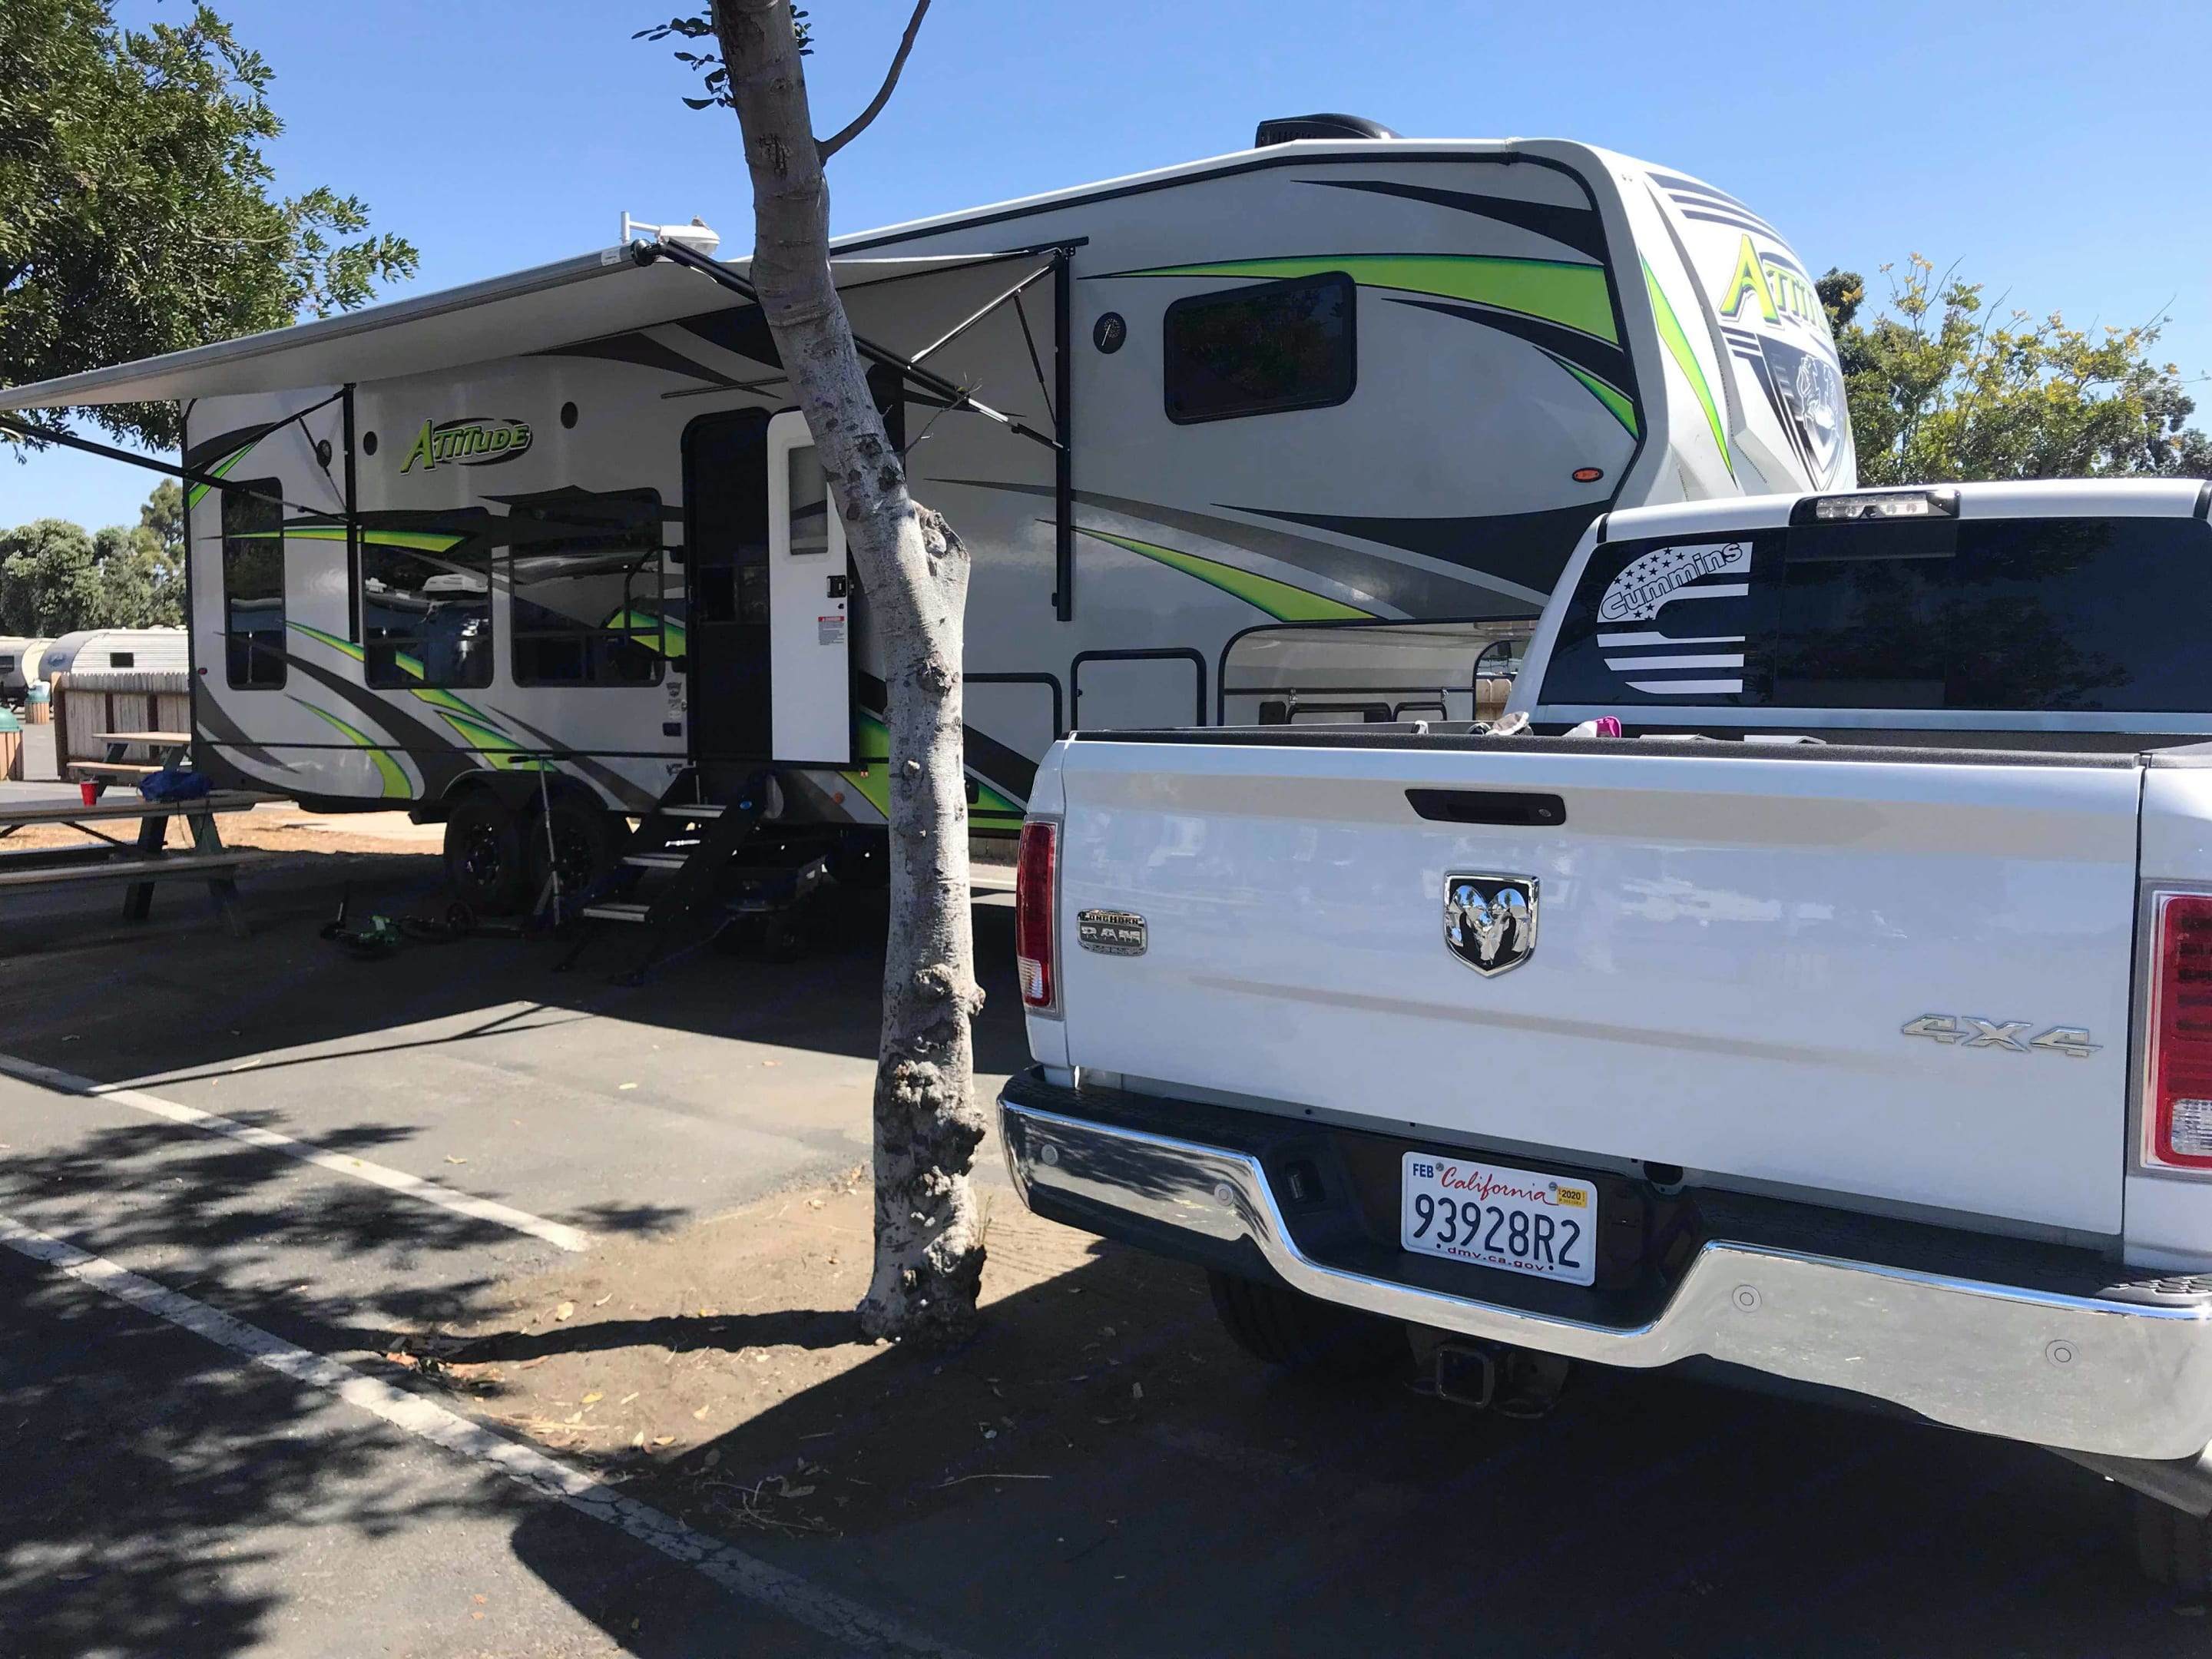 Camping in San Diego (Mission Bay). Eclipse Recreational Vehicles Attitude 2020